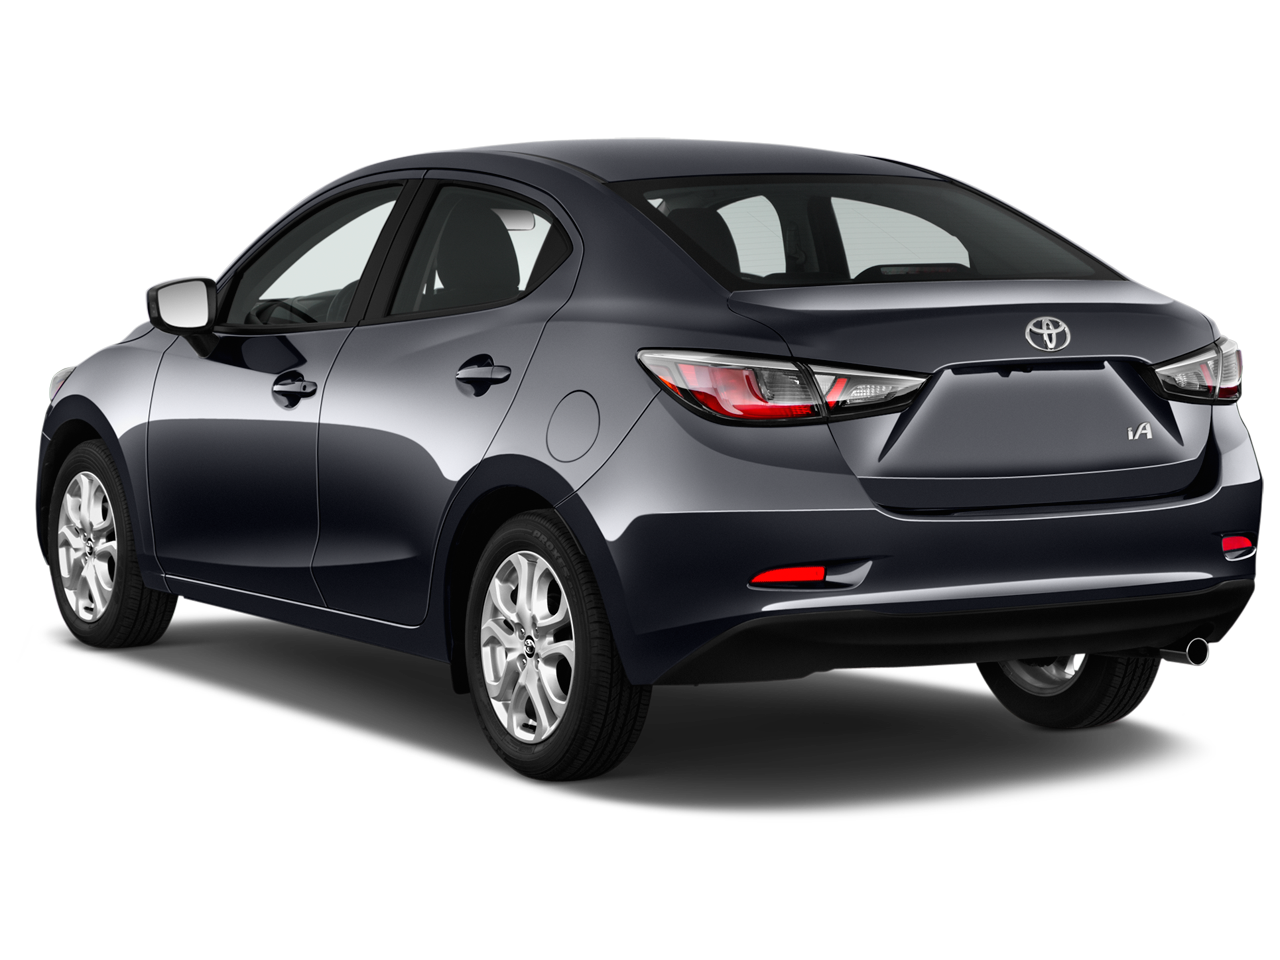 Toyota Yaris 2008 Sedan Best Car Reviews And Pictures 2017